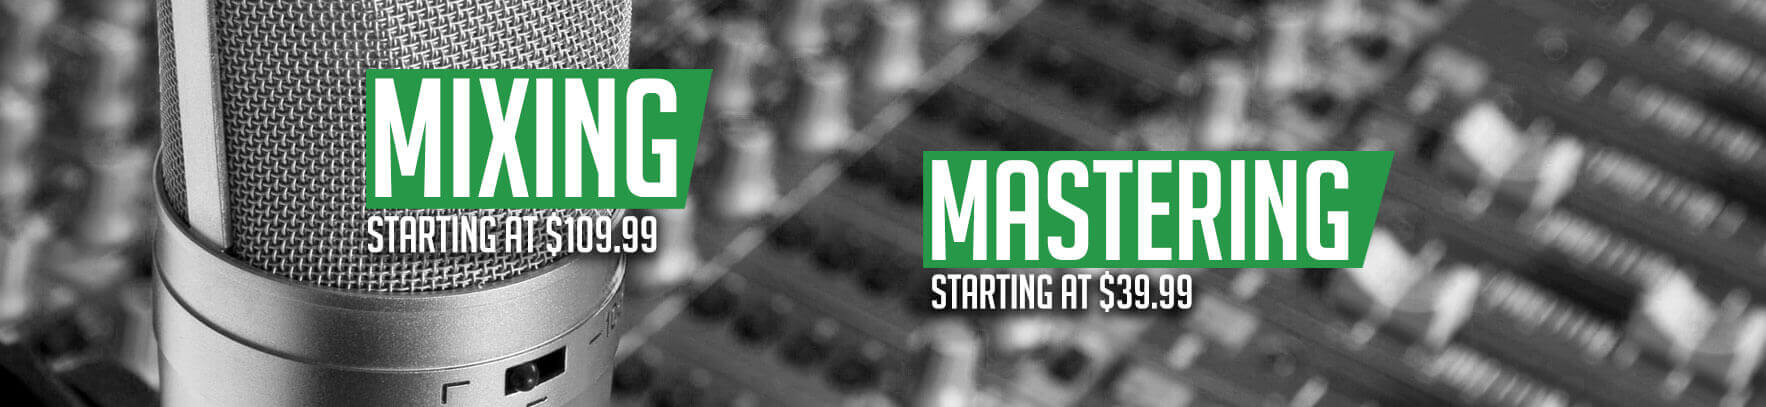 Mixing and Mastering Prices Starting At 39.99